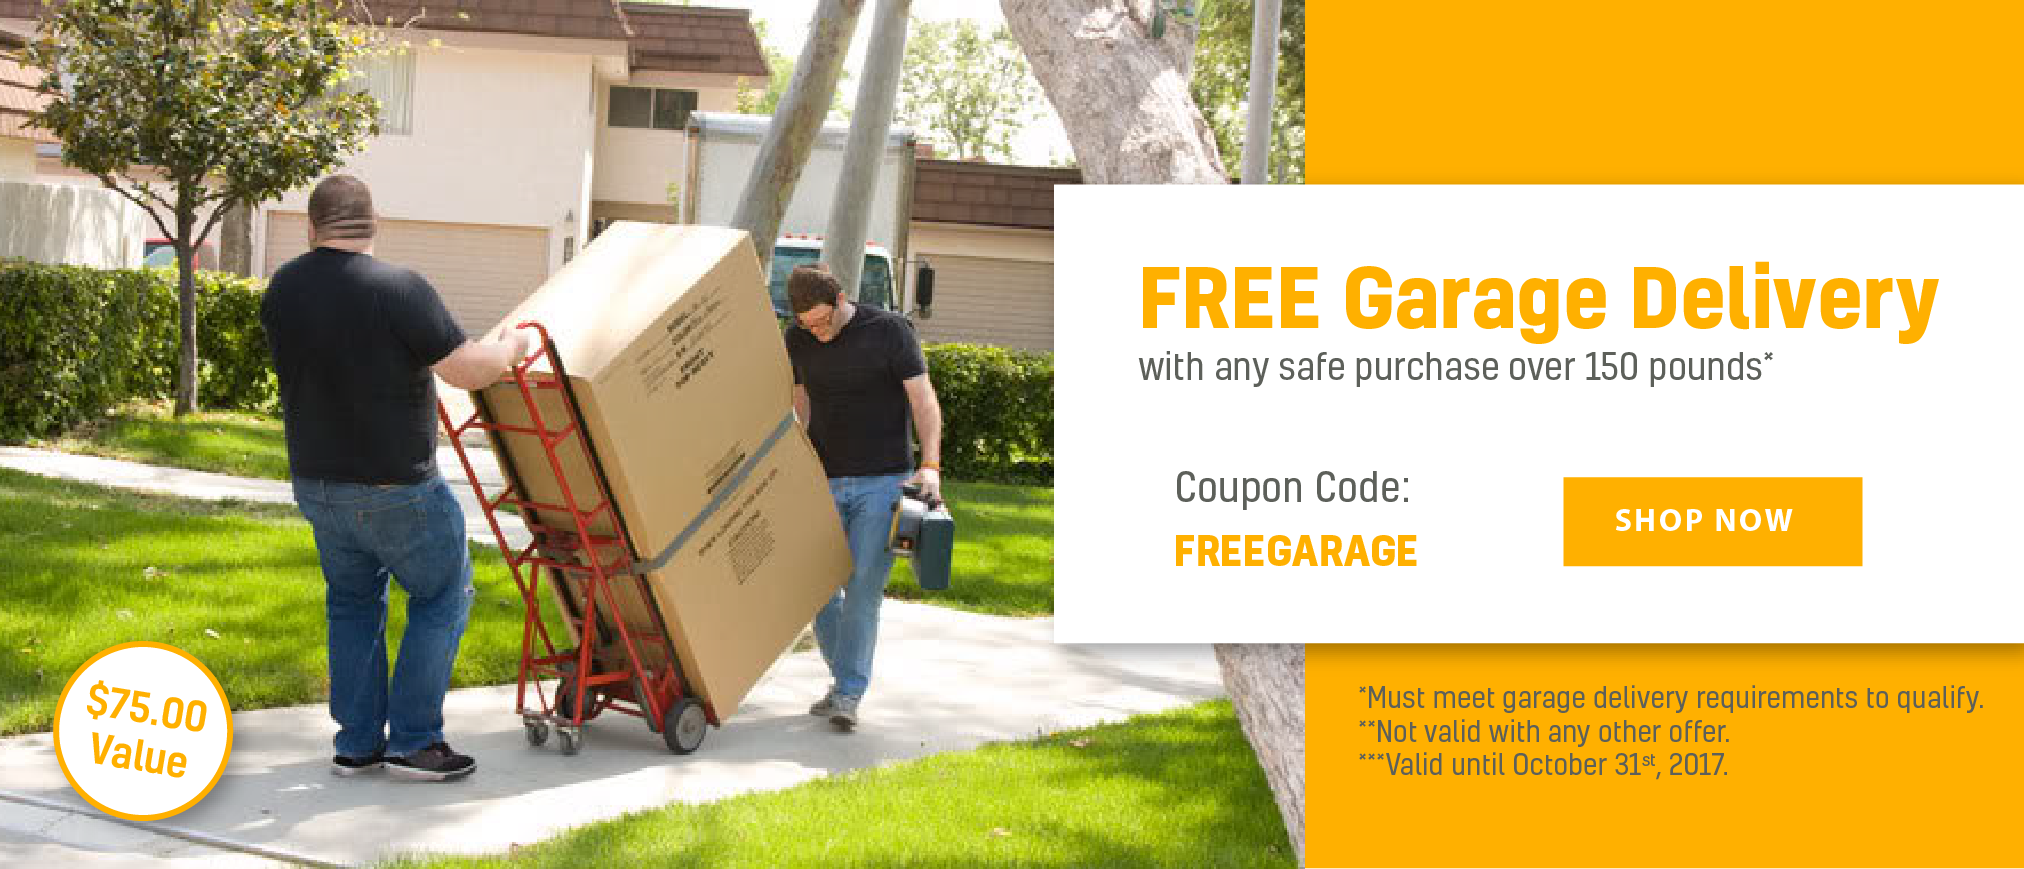 Free Garage Delivery